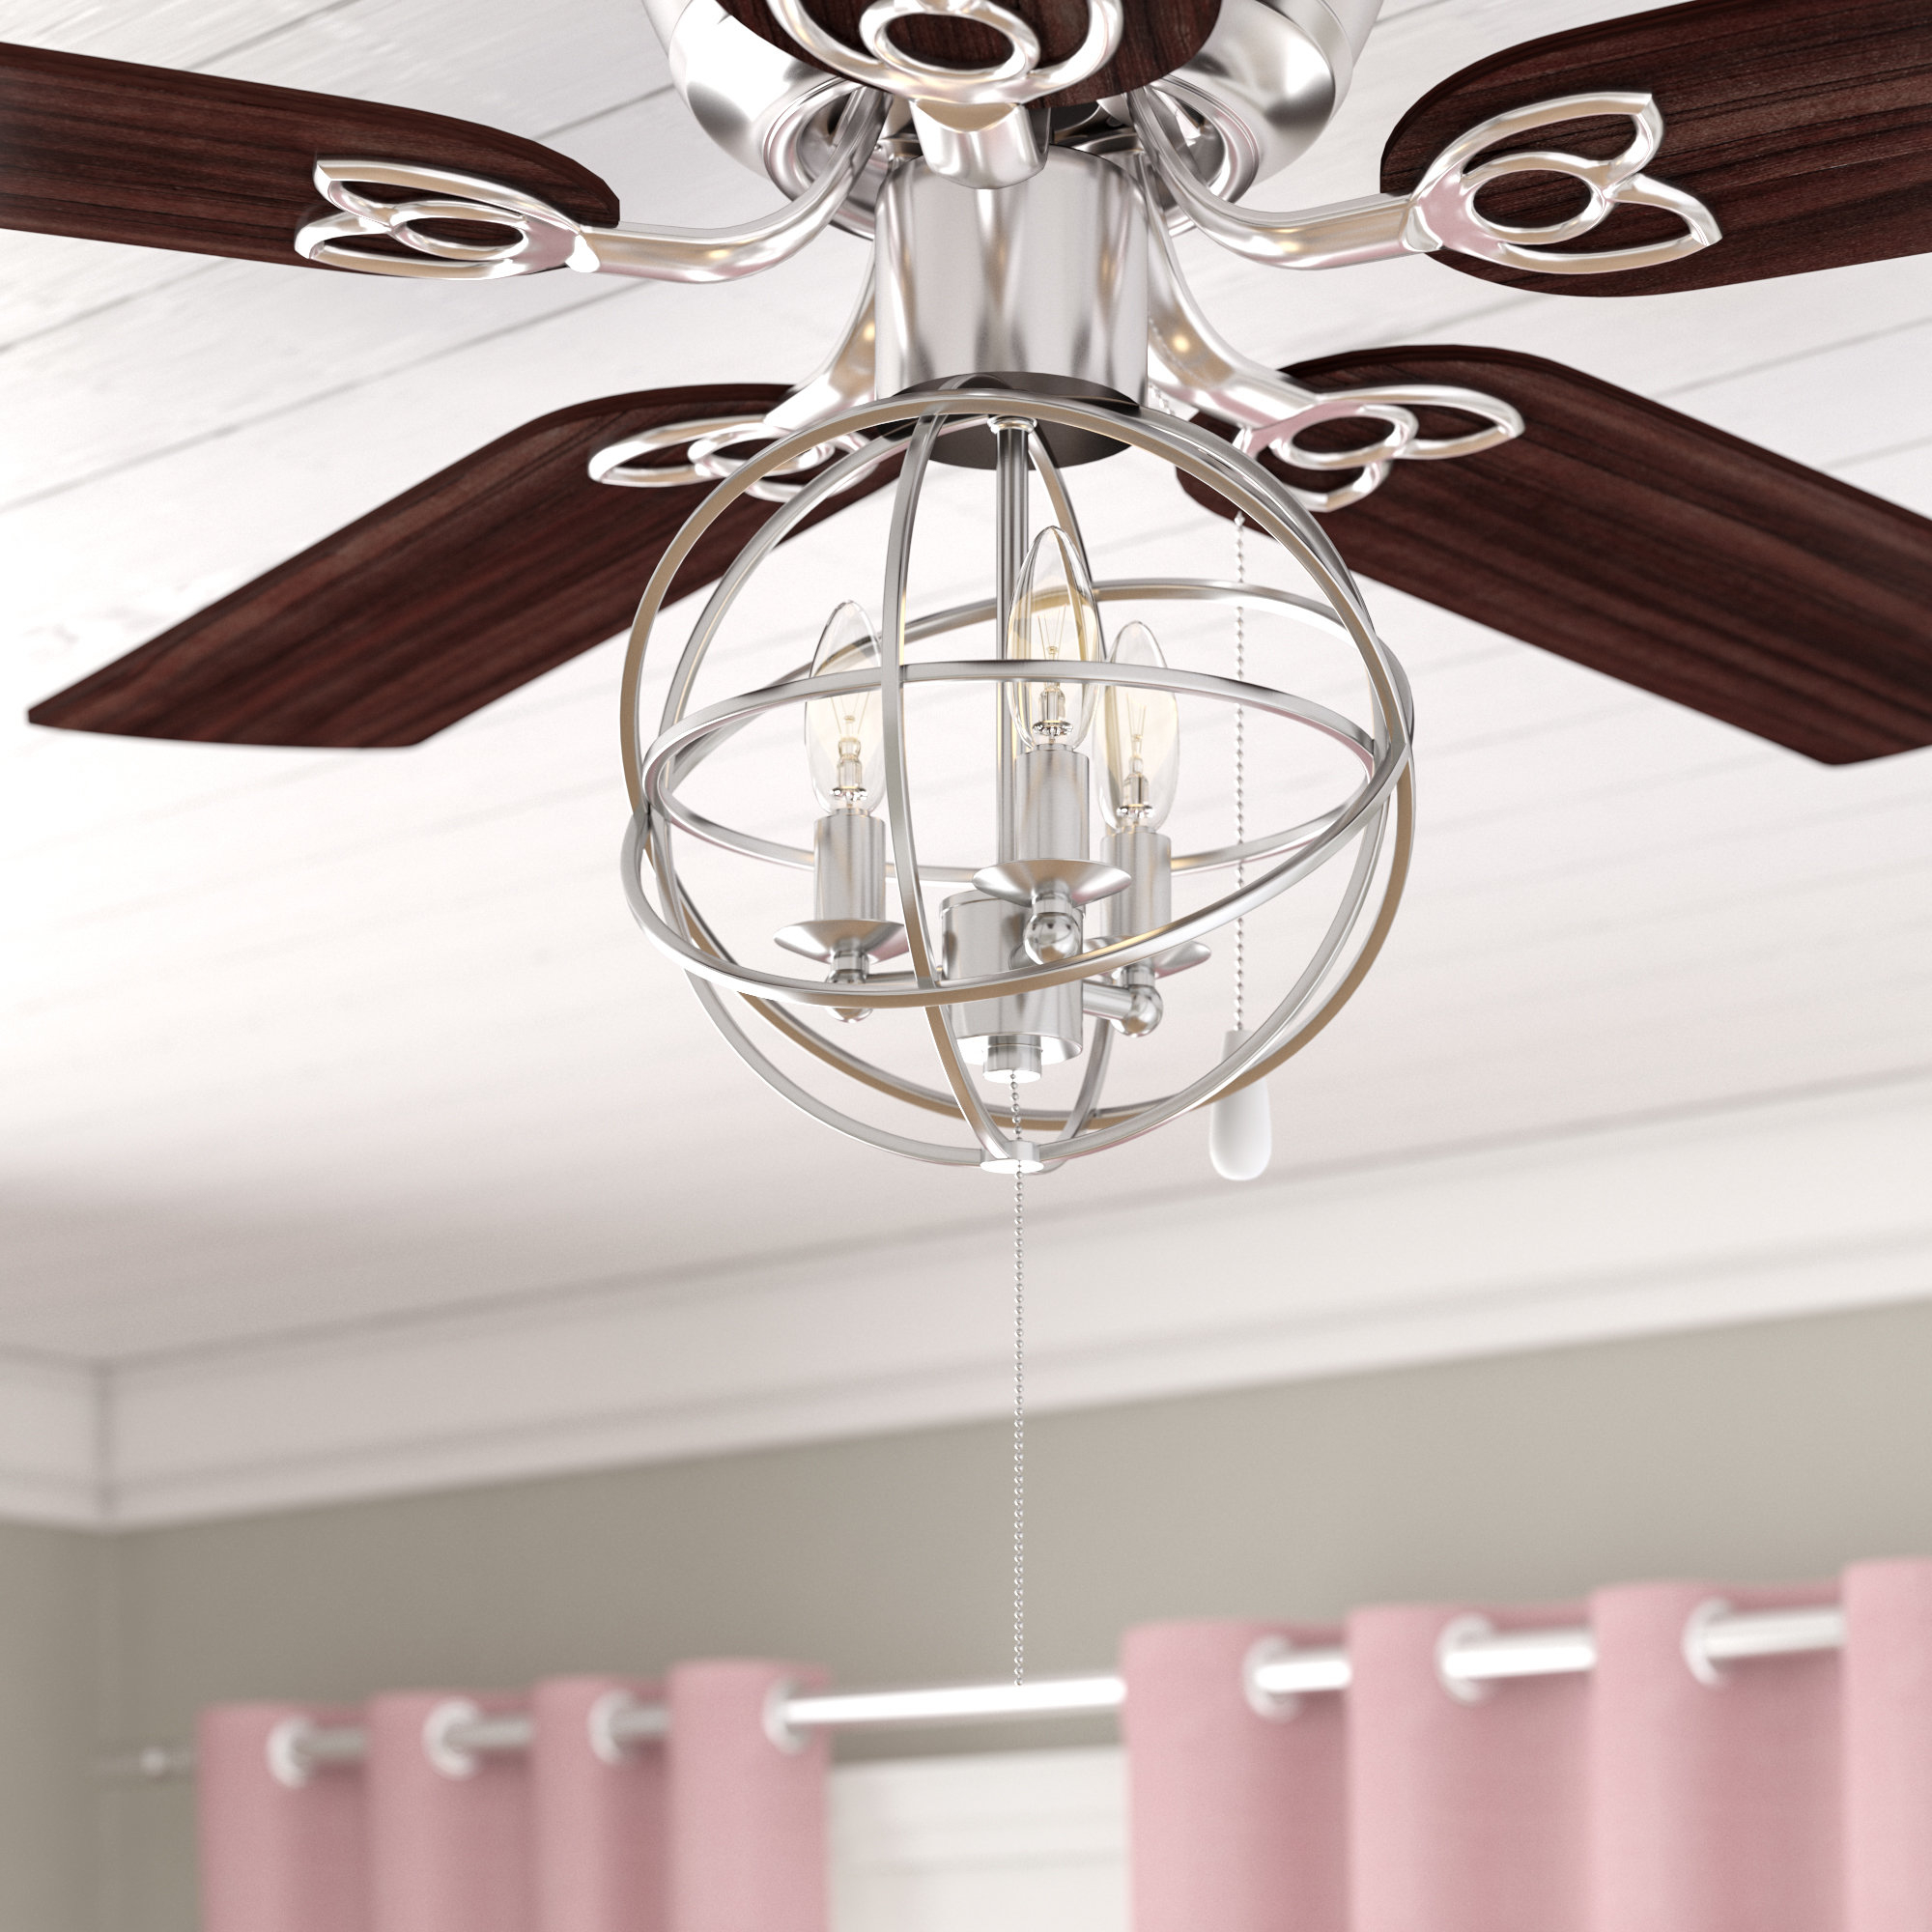 Gracie Oaks 3 Light Led Globe Ceiling Fan Light Kit Reviews Wayfair pertaining to proportions 2000 X 2000